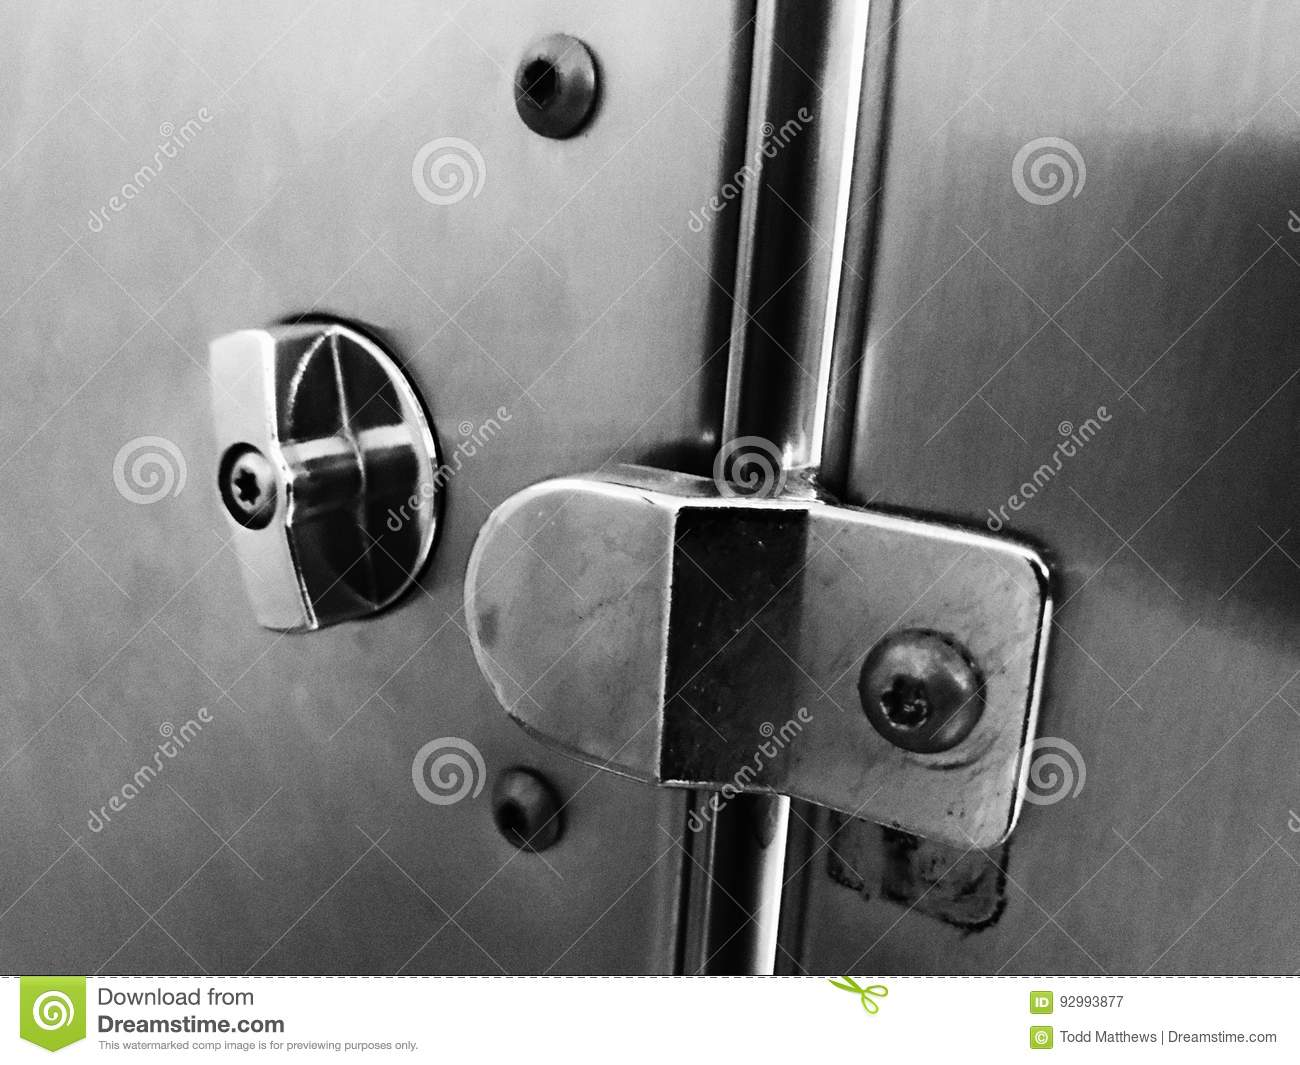 Bathroom Stall Door Lock Stock Image Image Of Bathroom - Latch for bathroom stall door